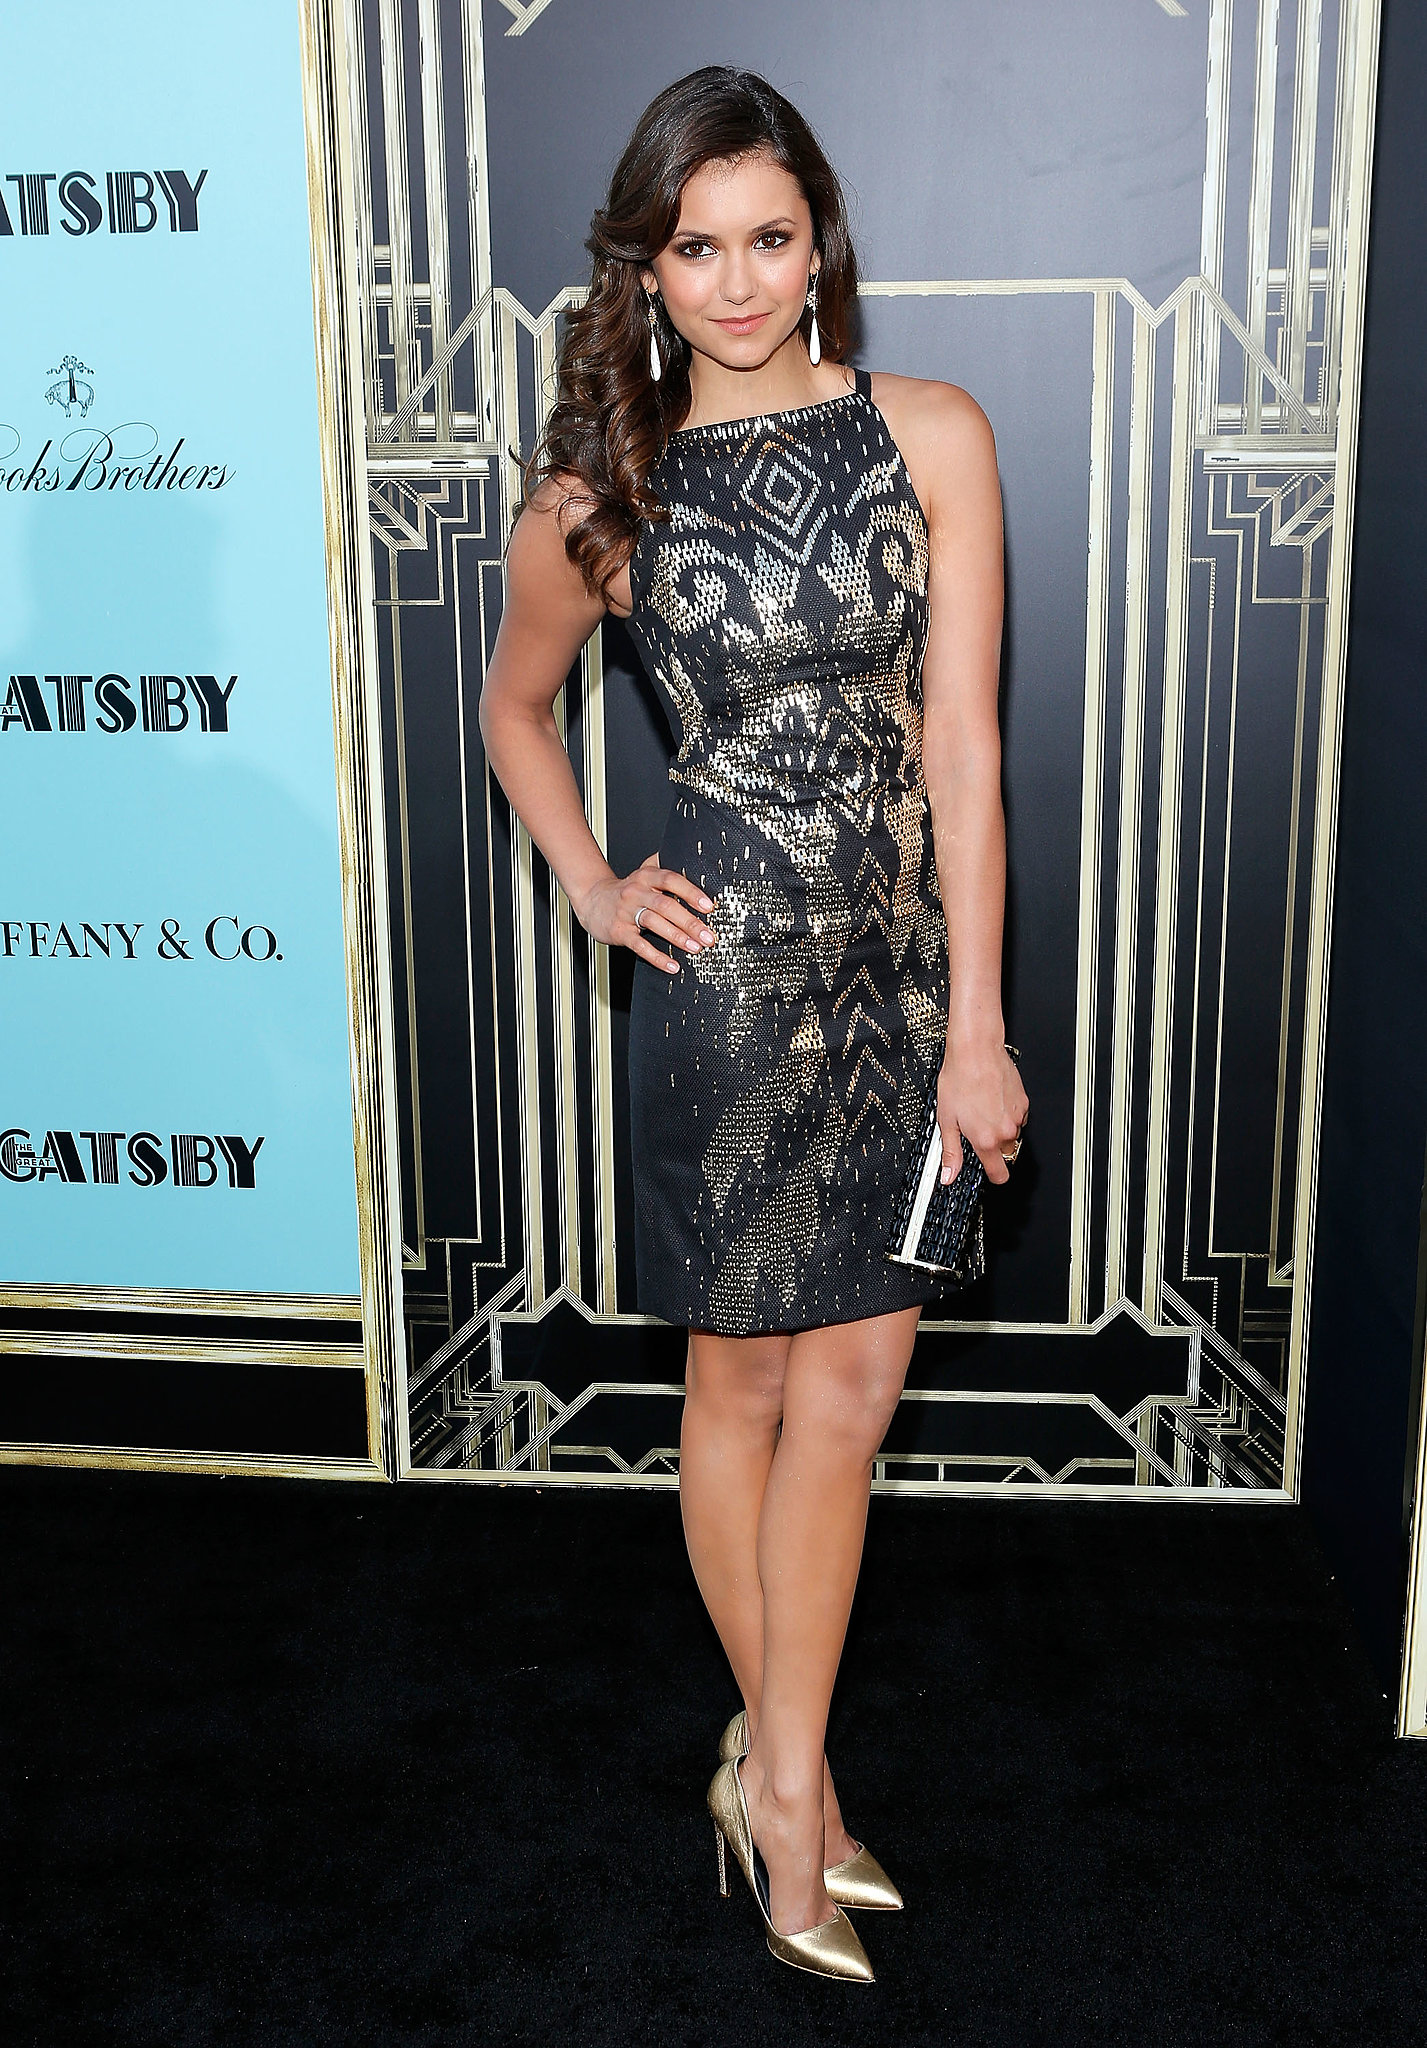 Glistening in an embellished Versace dress and metallic gold Rupert Sanderson pumps, it's clear Nina Dobrev is embracing her celebrity star power one dazzling creation at a time.